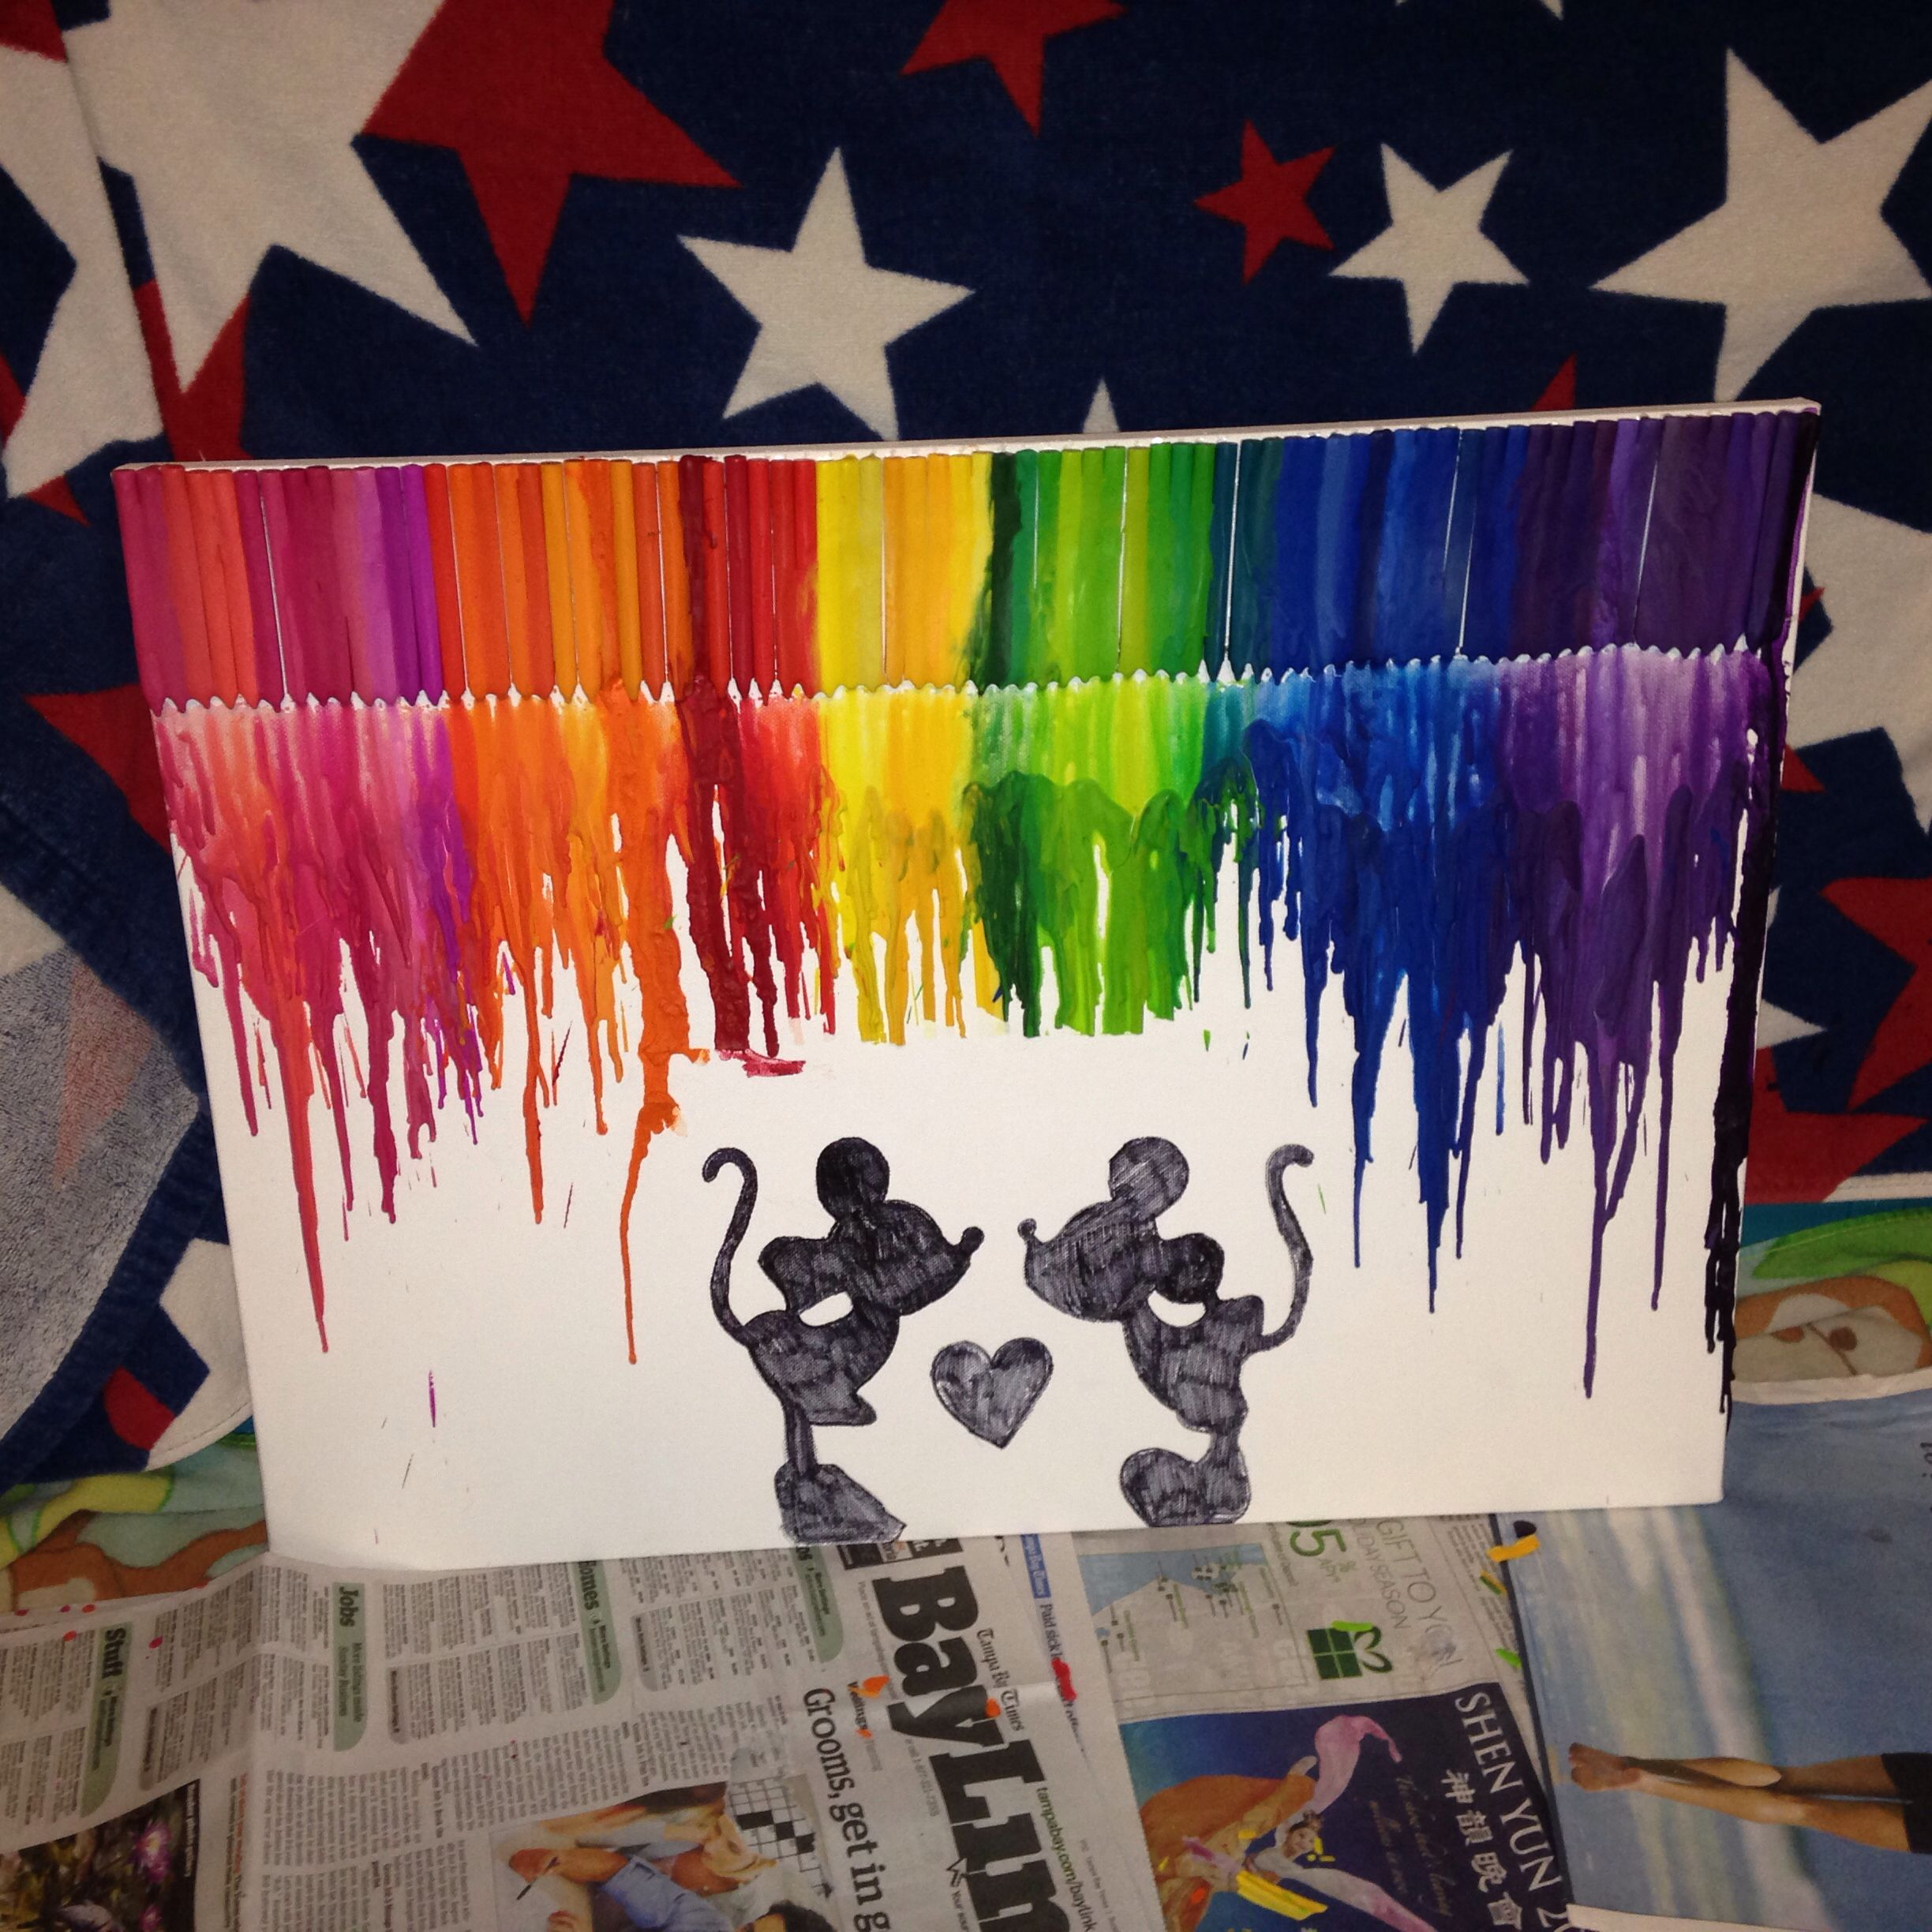 color crayon art : I Got Bored So I Decided To Make A Disney Inspired Crayon Melt